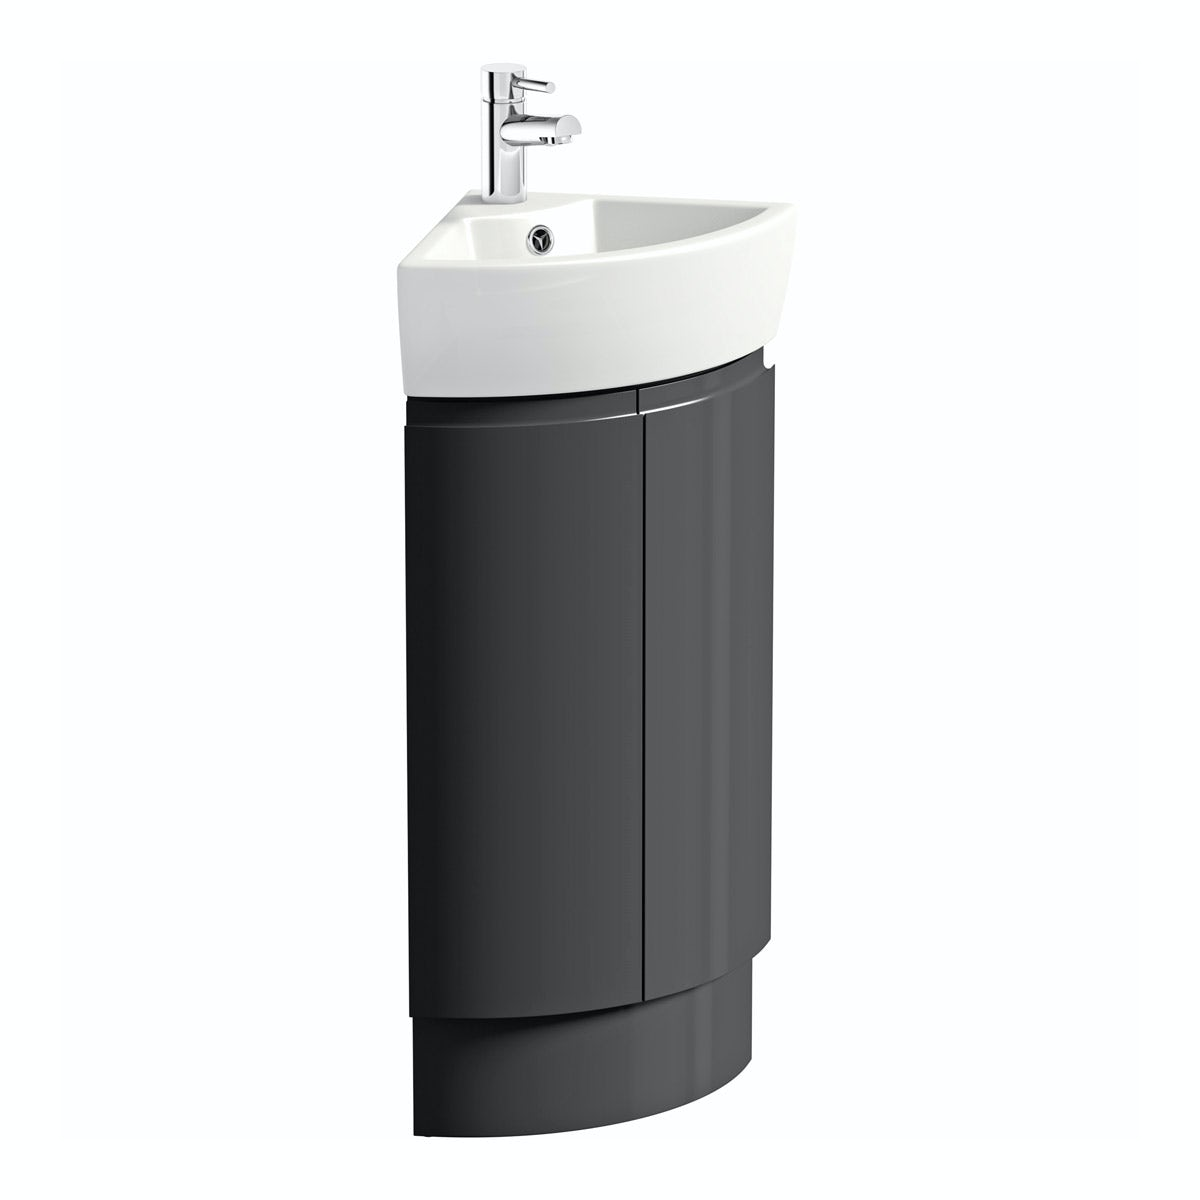 Harrison Slate compact  corner vanity unit and ceramic basin